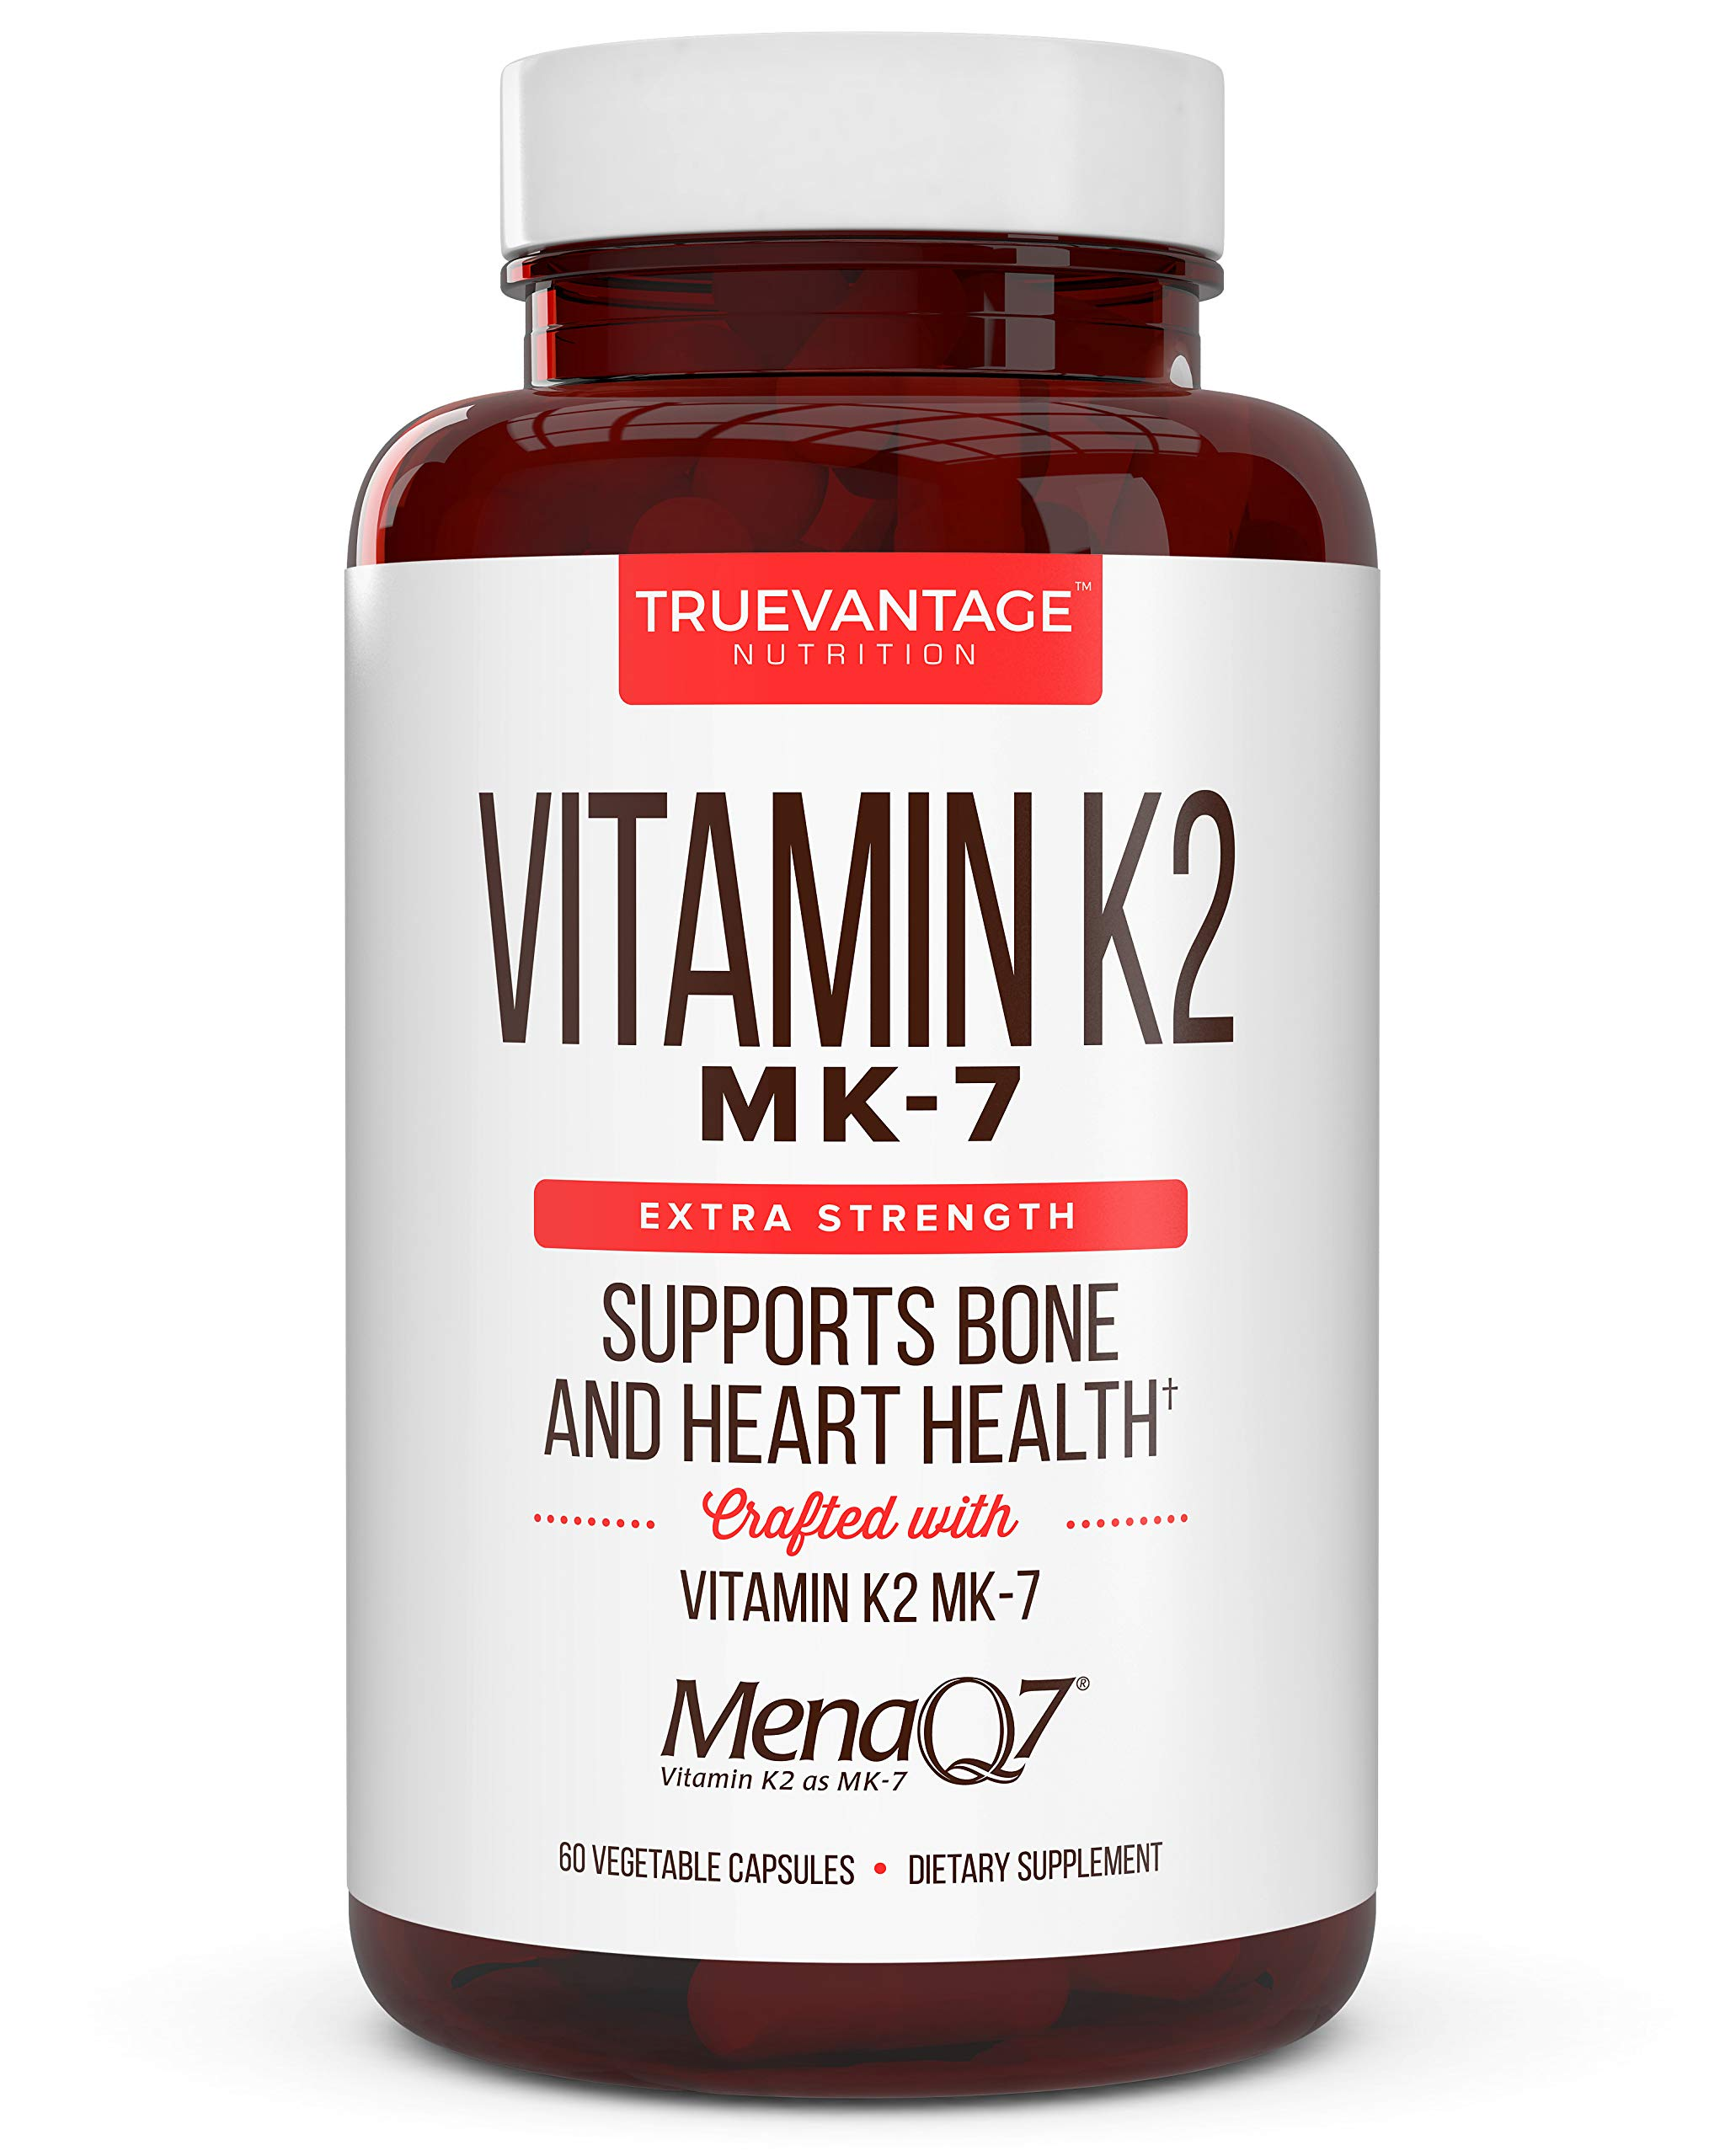 Extra Strength Vitamin K2 Supplement 180mcg - Vitamin k2 Supplement Supports Bone & Heart Health for Cardiovascular Calcium Absorption - 60 Easy to Swallow Vegan caps of Vitamin K2 MK7 (3 Pack) by Truevantage Nutrition (Image #5)